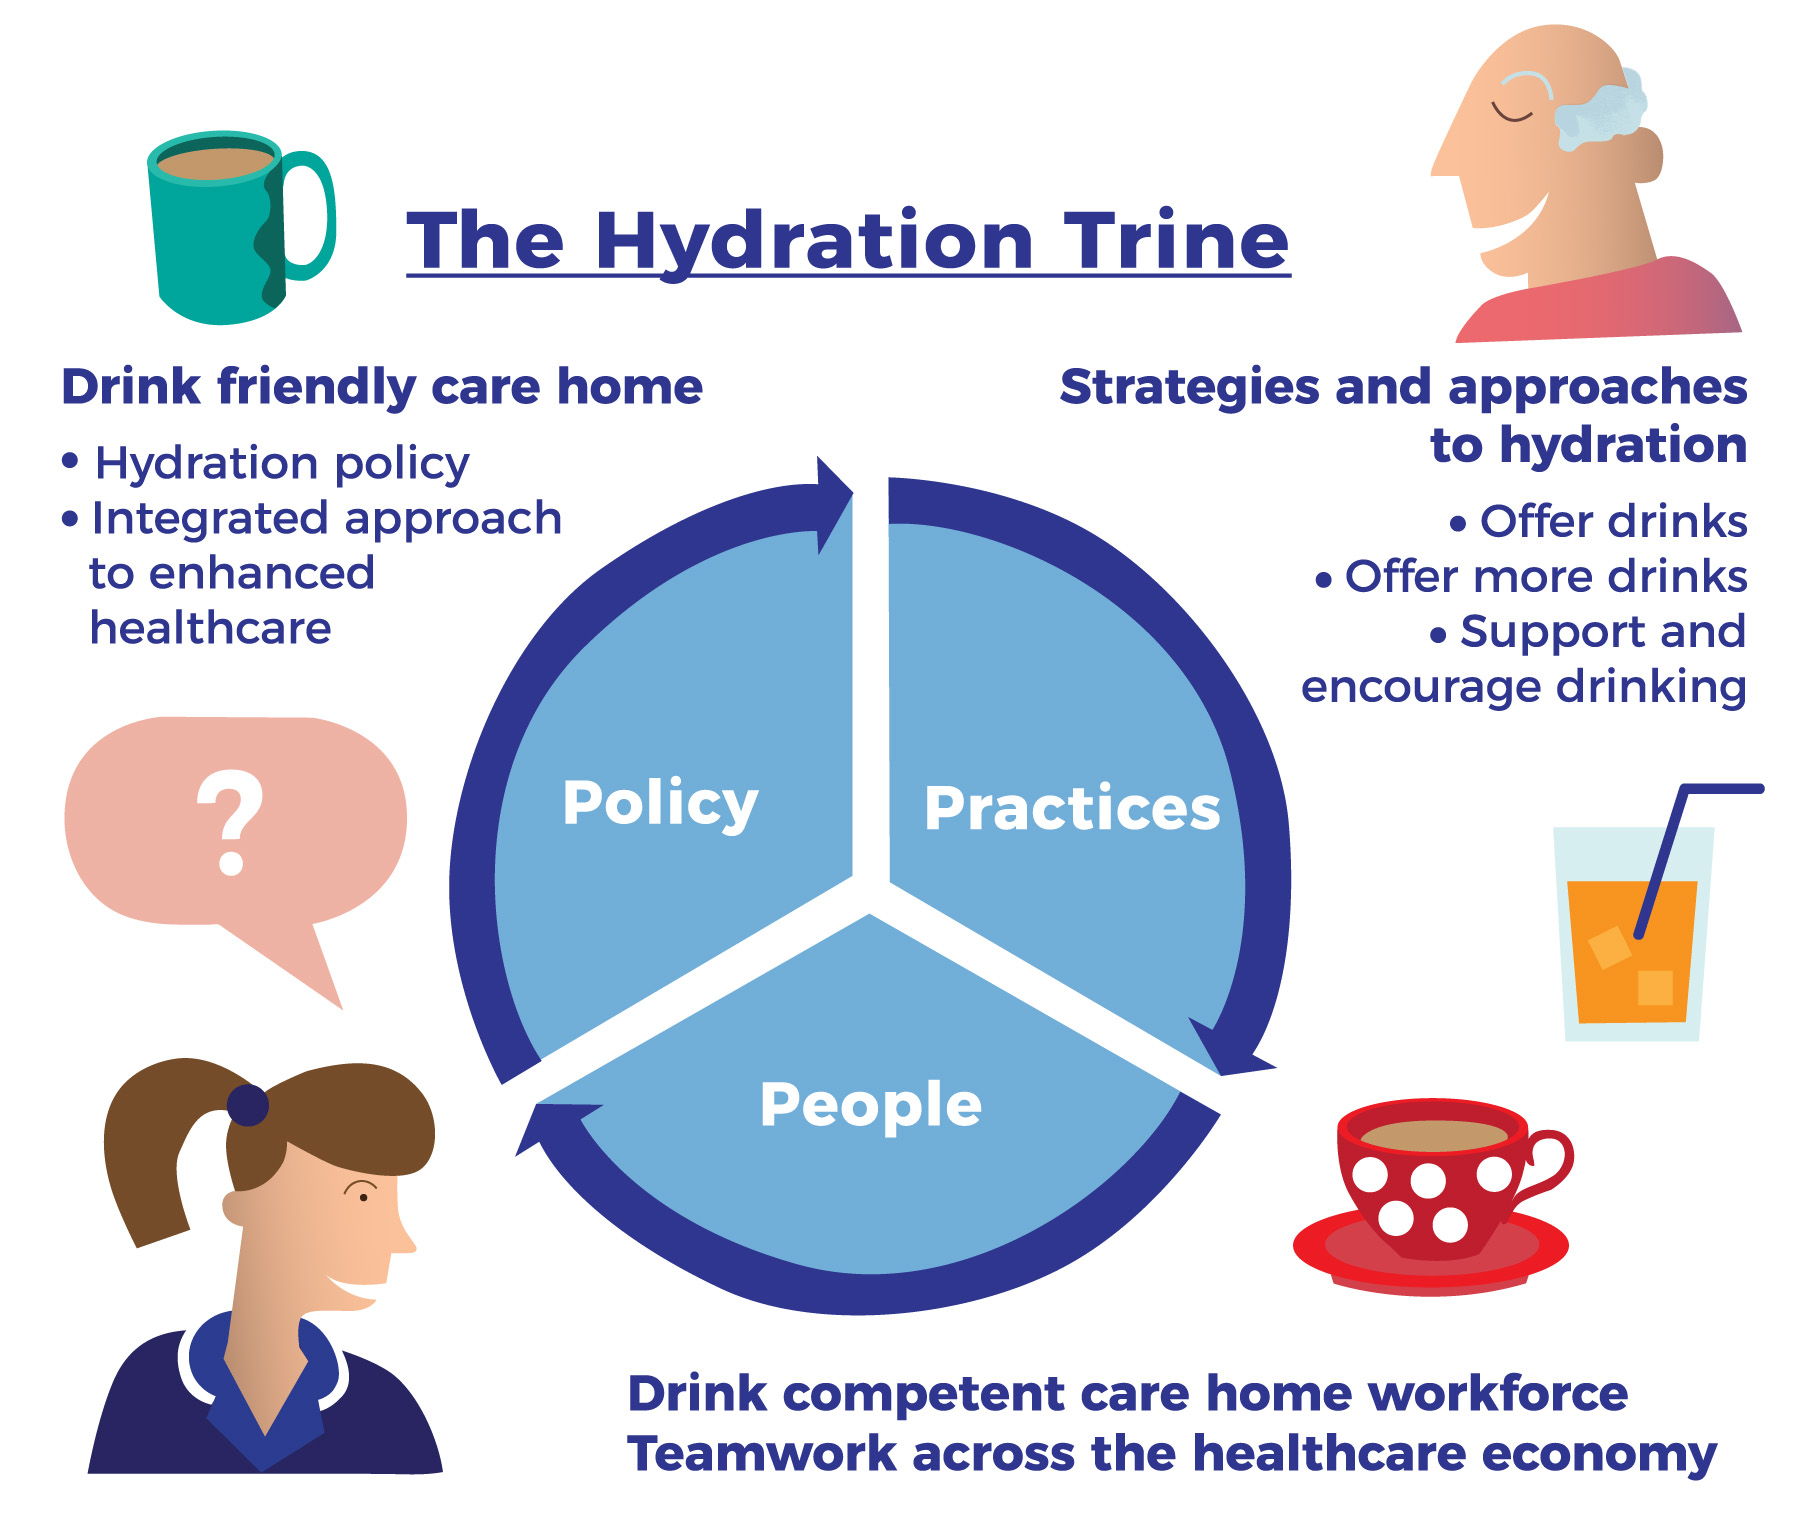 CCG -The Hydration Trine1.jpg